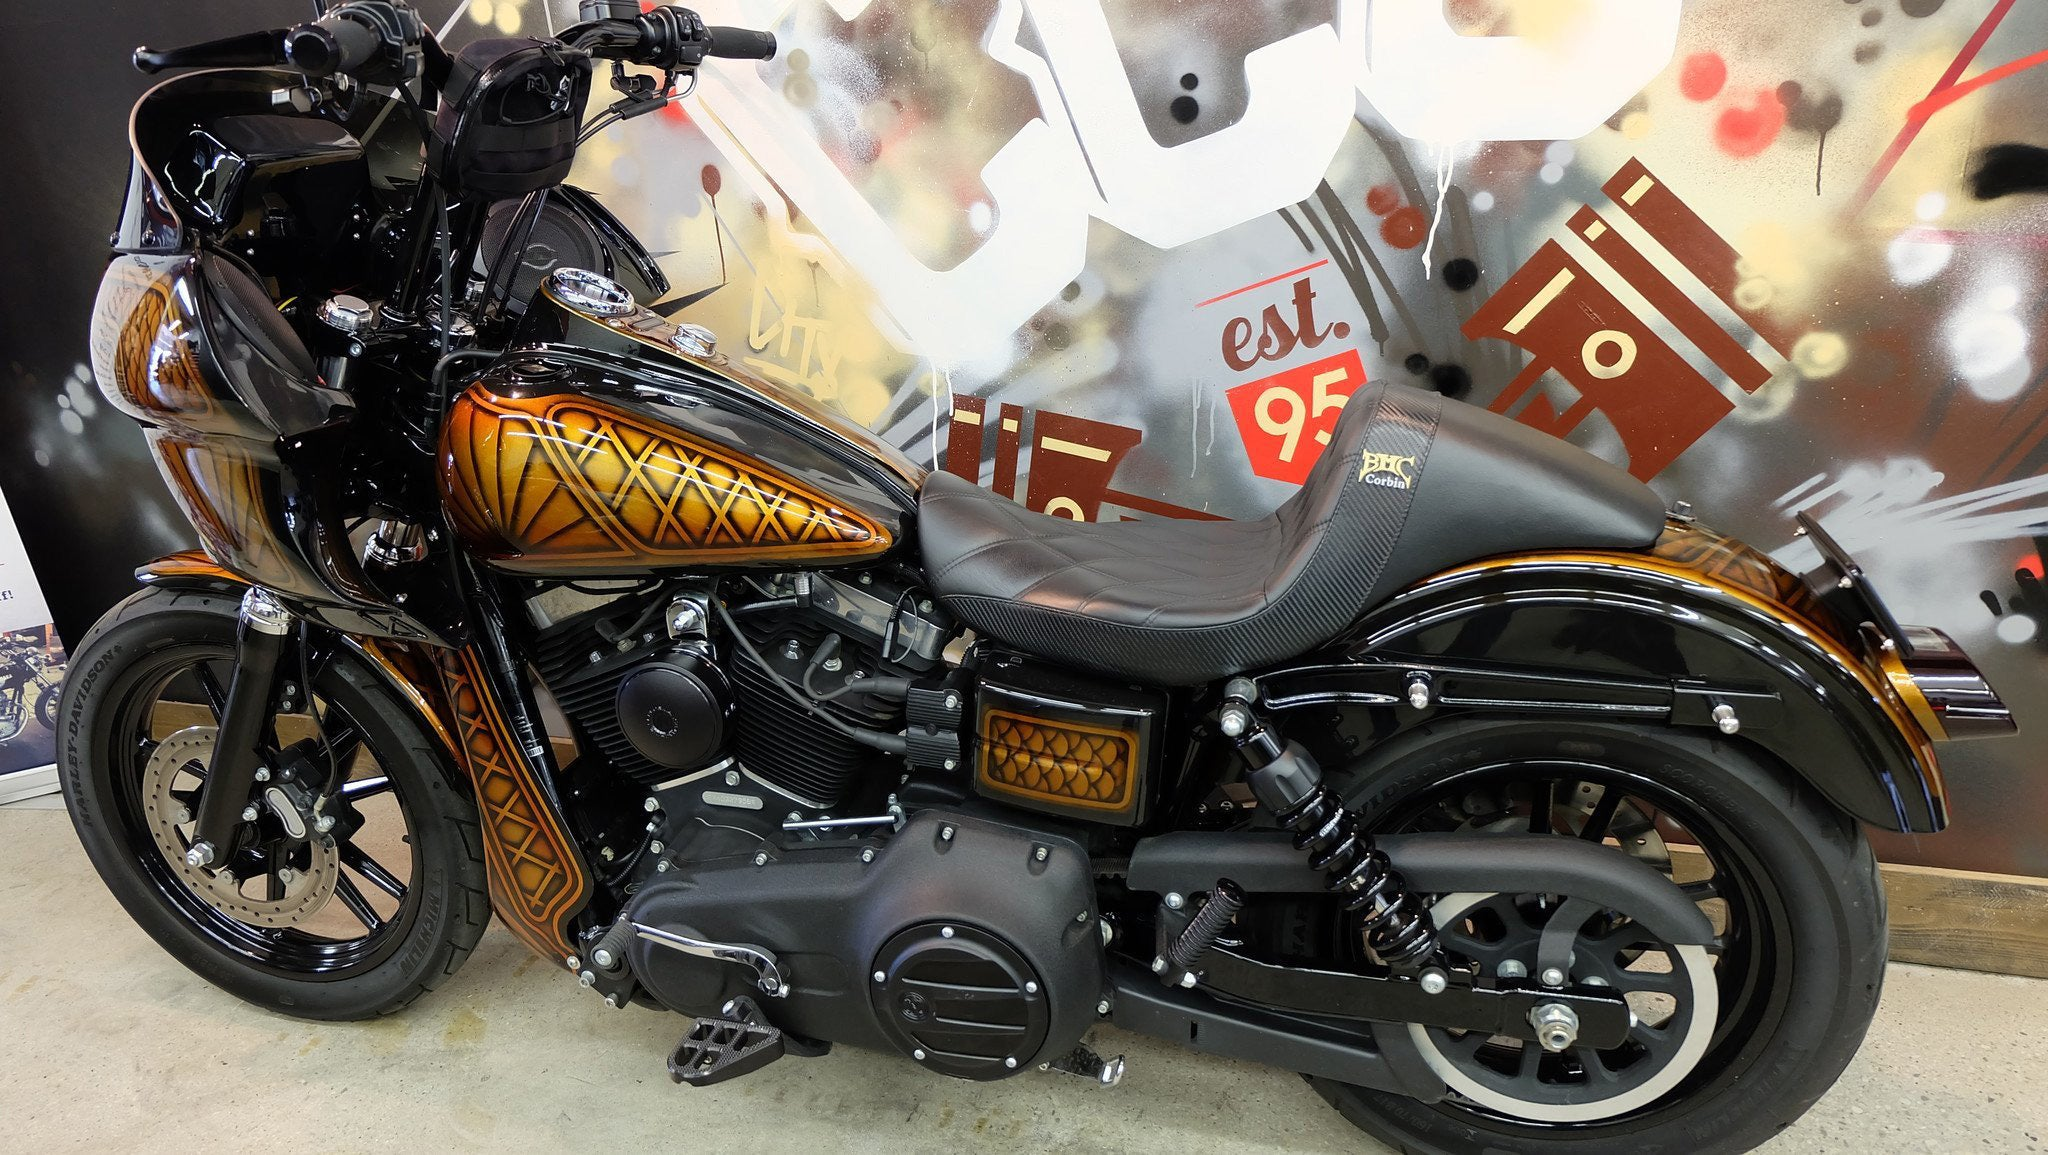 SOLD. 2013 Harley FXDB Custom